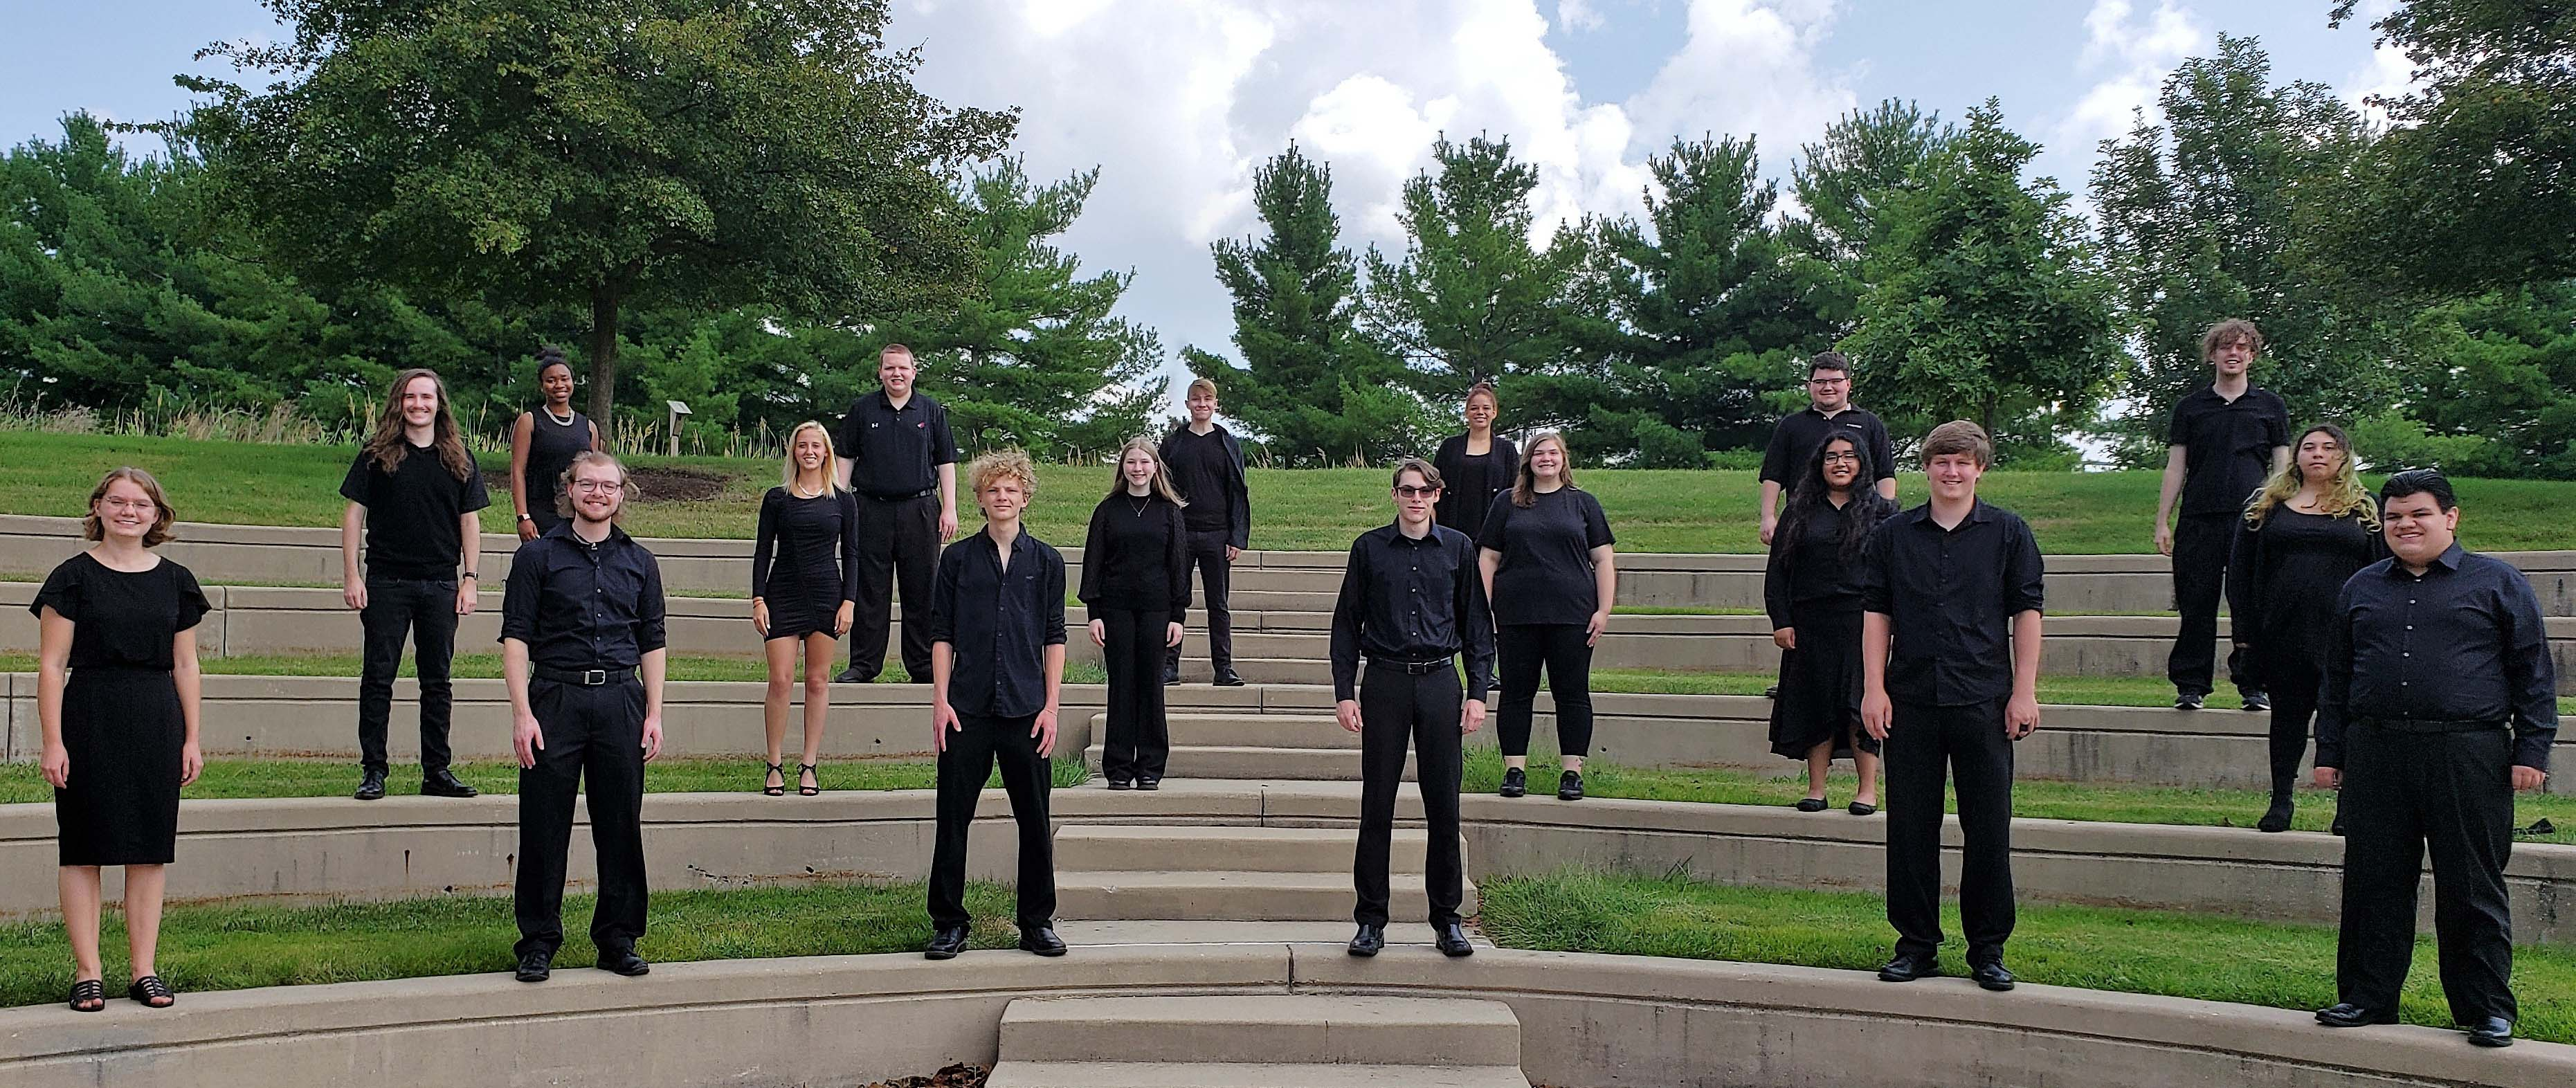 LLCC choir standing outside in ampitheater